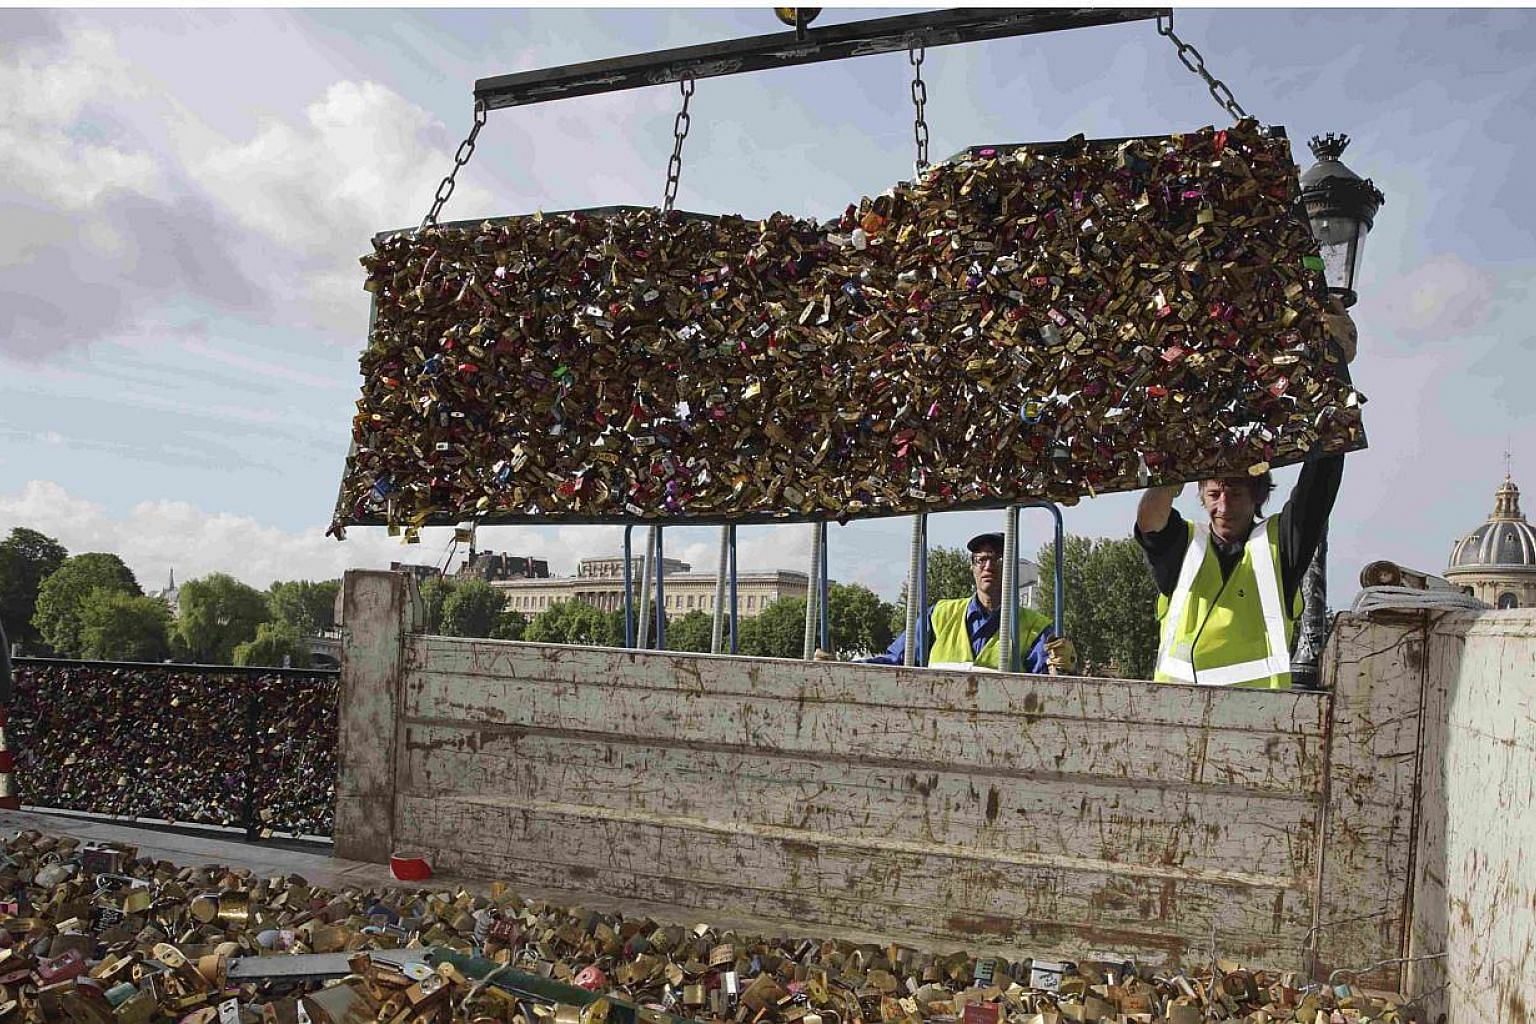 """City municipal employees lower iron grills covered with """"love locks"""" into a truck after they were removed from the Pont des Arts in Paris, France, on June 1, 2015. Parisian authorities on Monday removed tens of thousands of """"love locks"""", padlocks cha"""